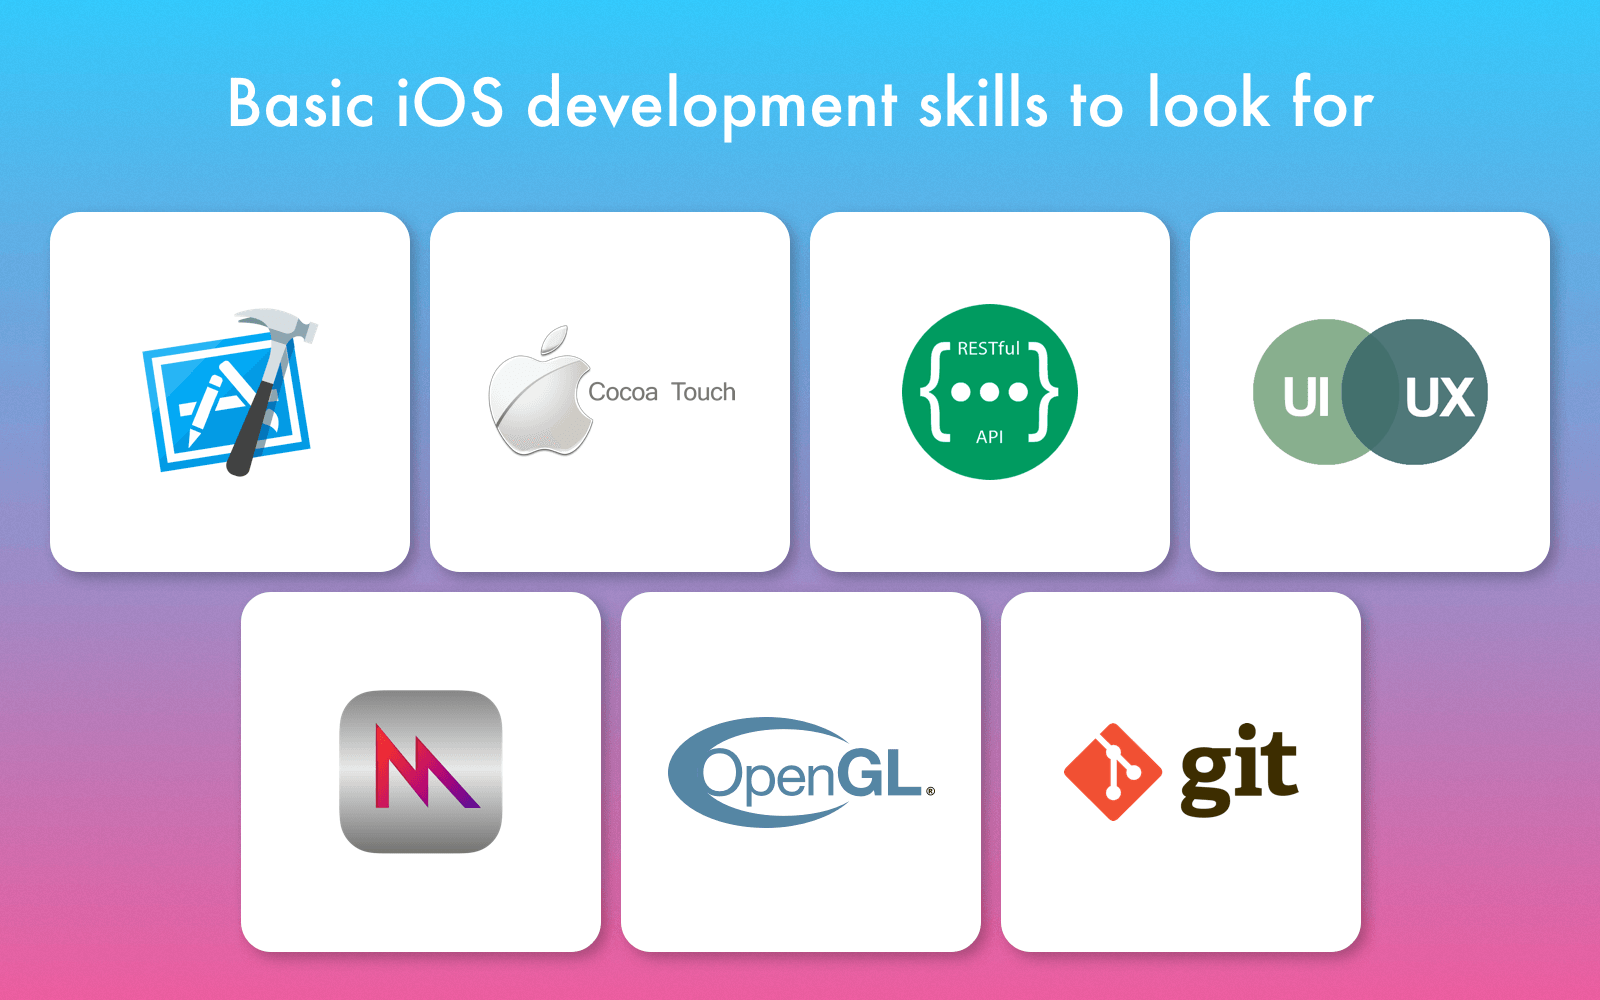 iOS developer skills to look for